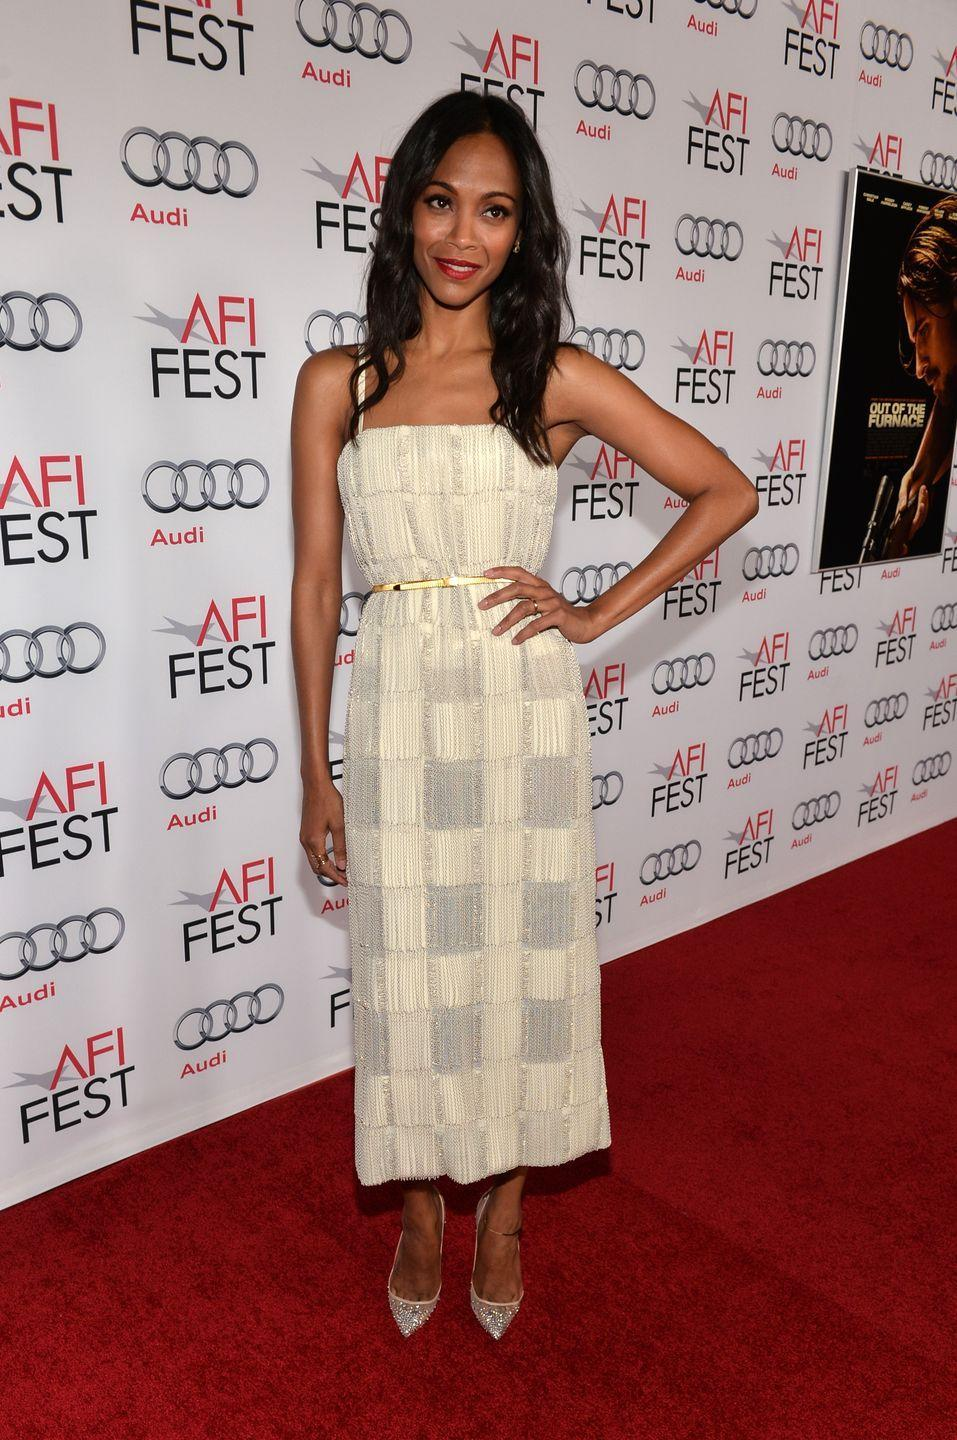 <p>Zoë Saldana wore sparkly pumps to a screening of <em>Out of the Furnace</em> in Hollywood, using a white dress with a metallic belt to pull the look together.</p>